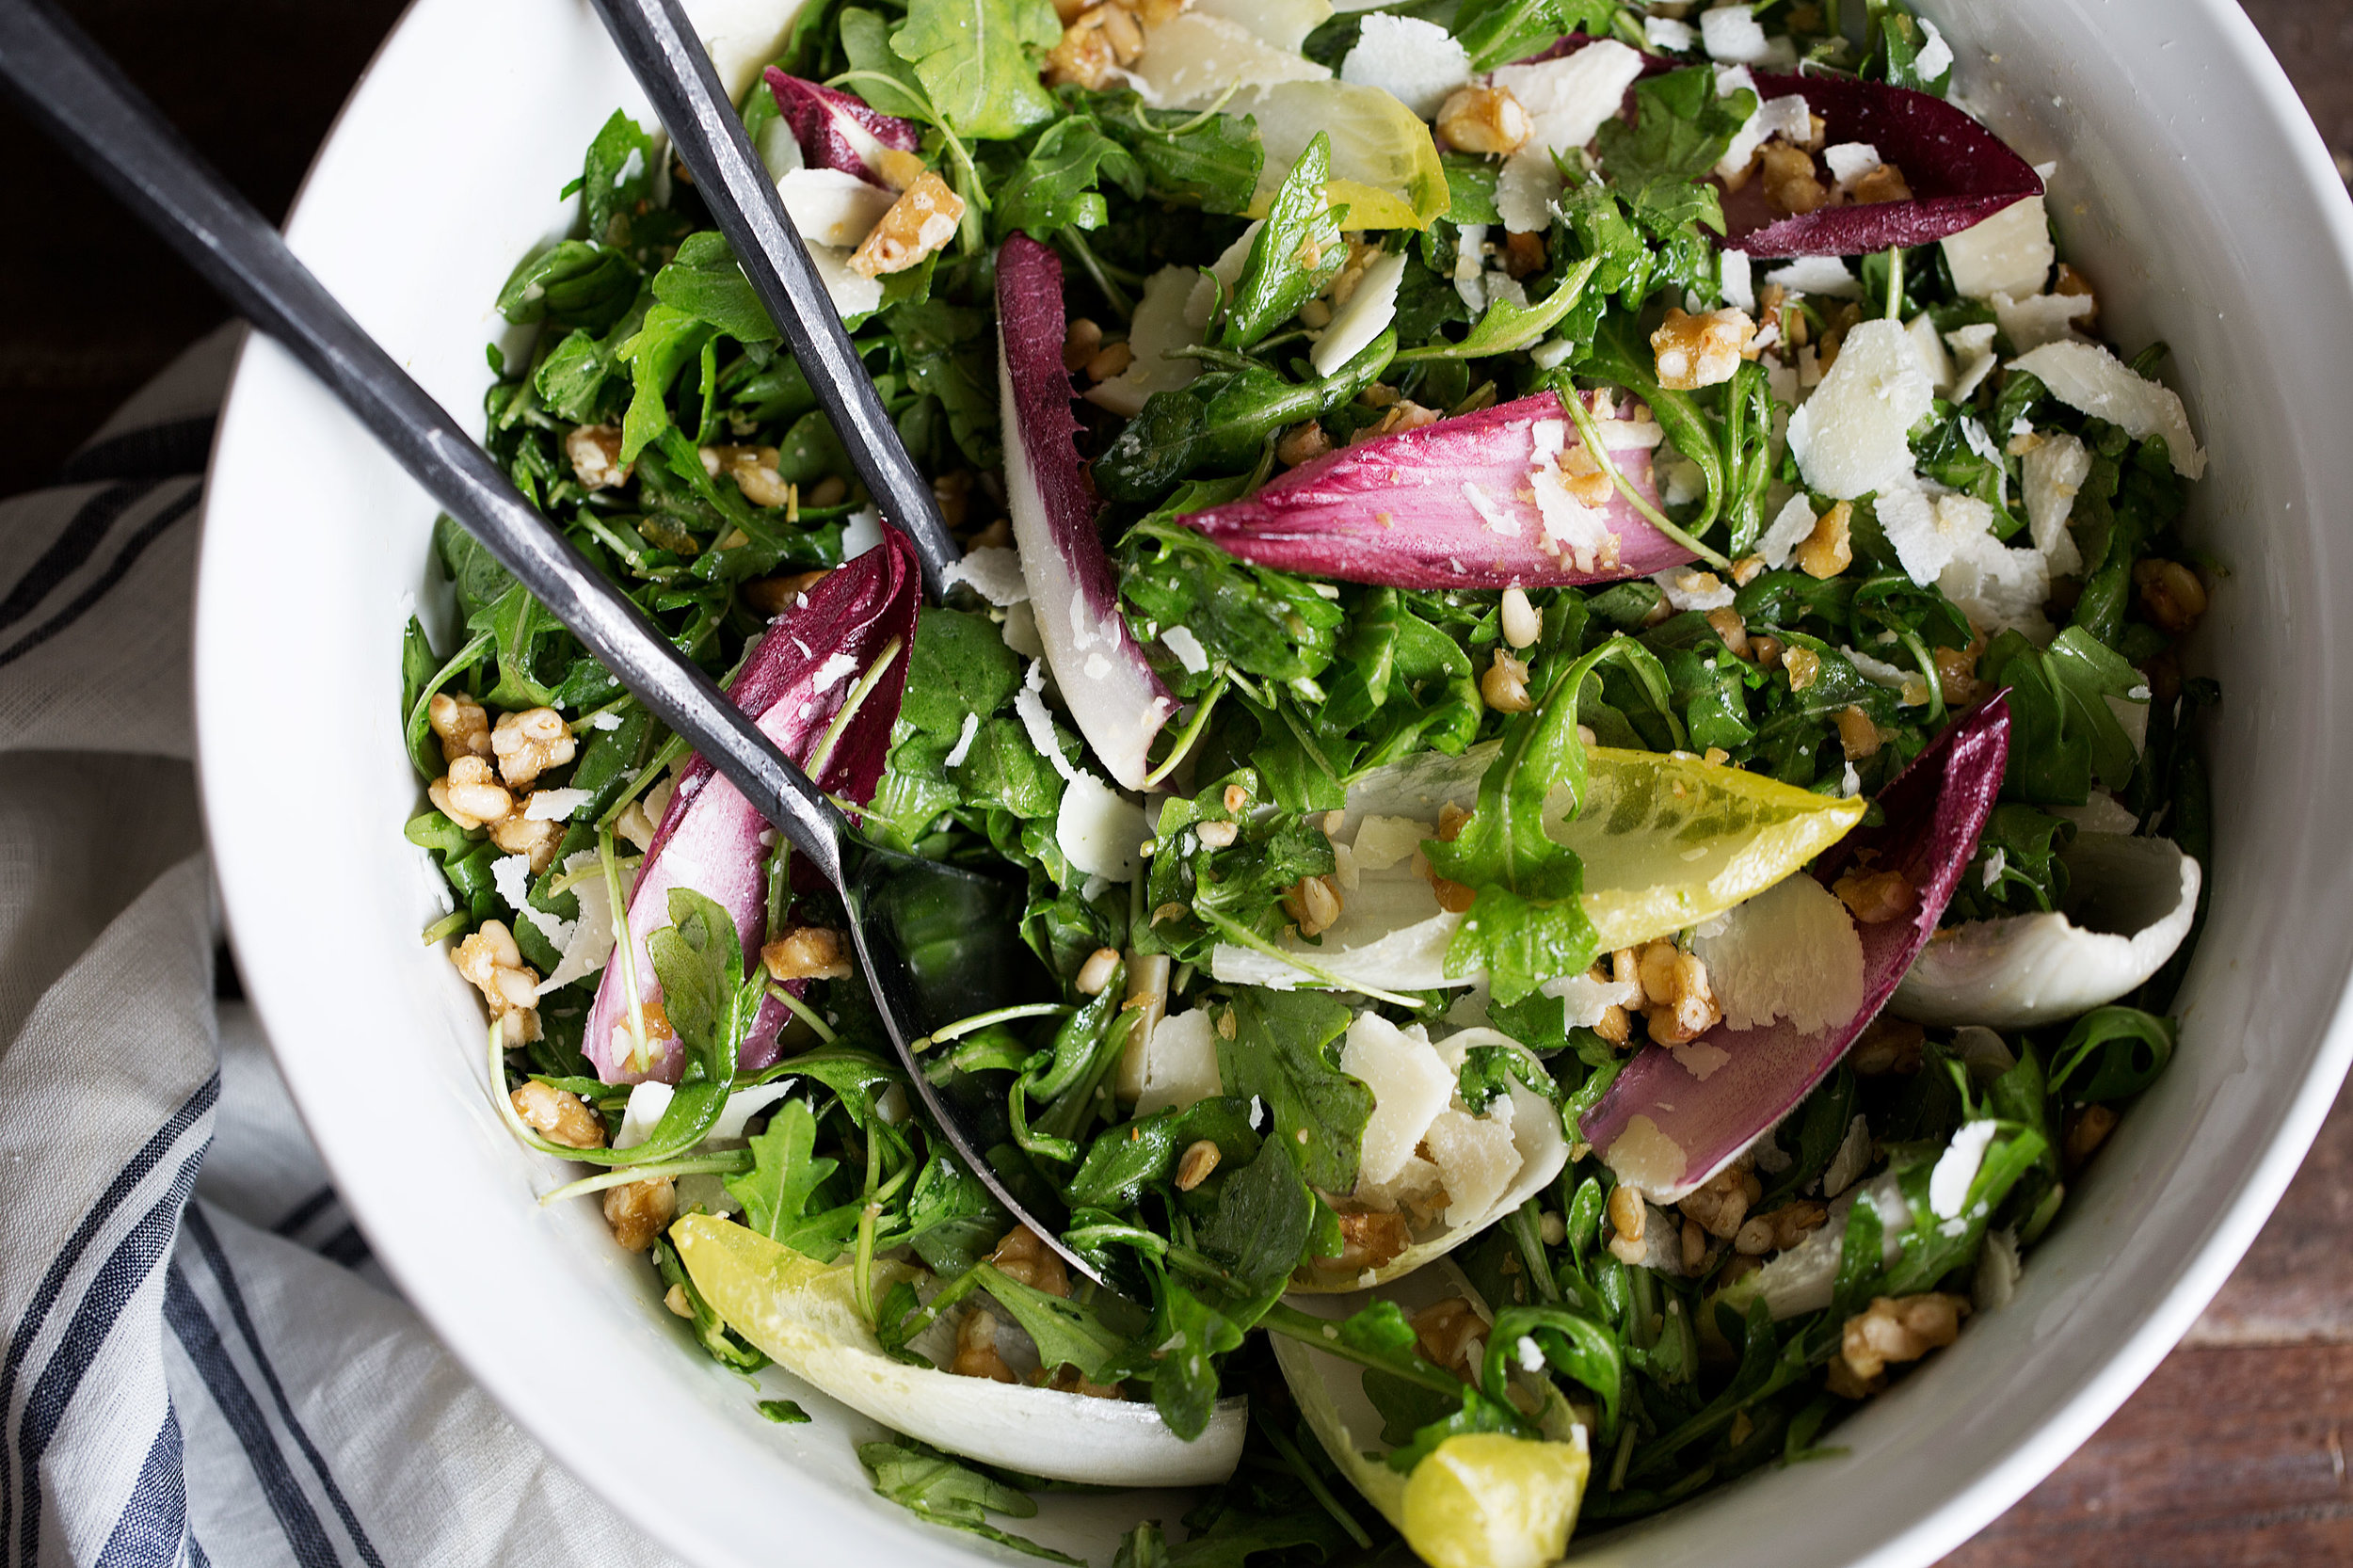 Arugula-and-Endive-Salad-with-Candied-Pine-Nuts-3.jpg